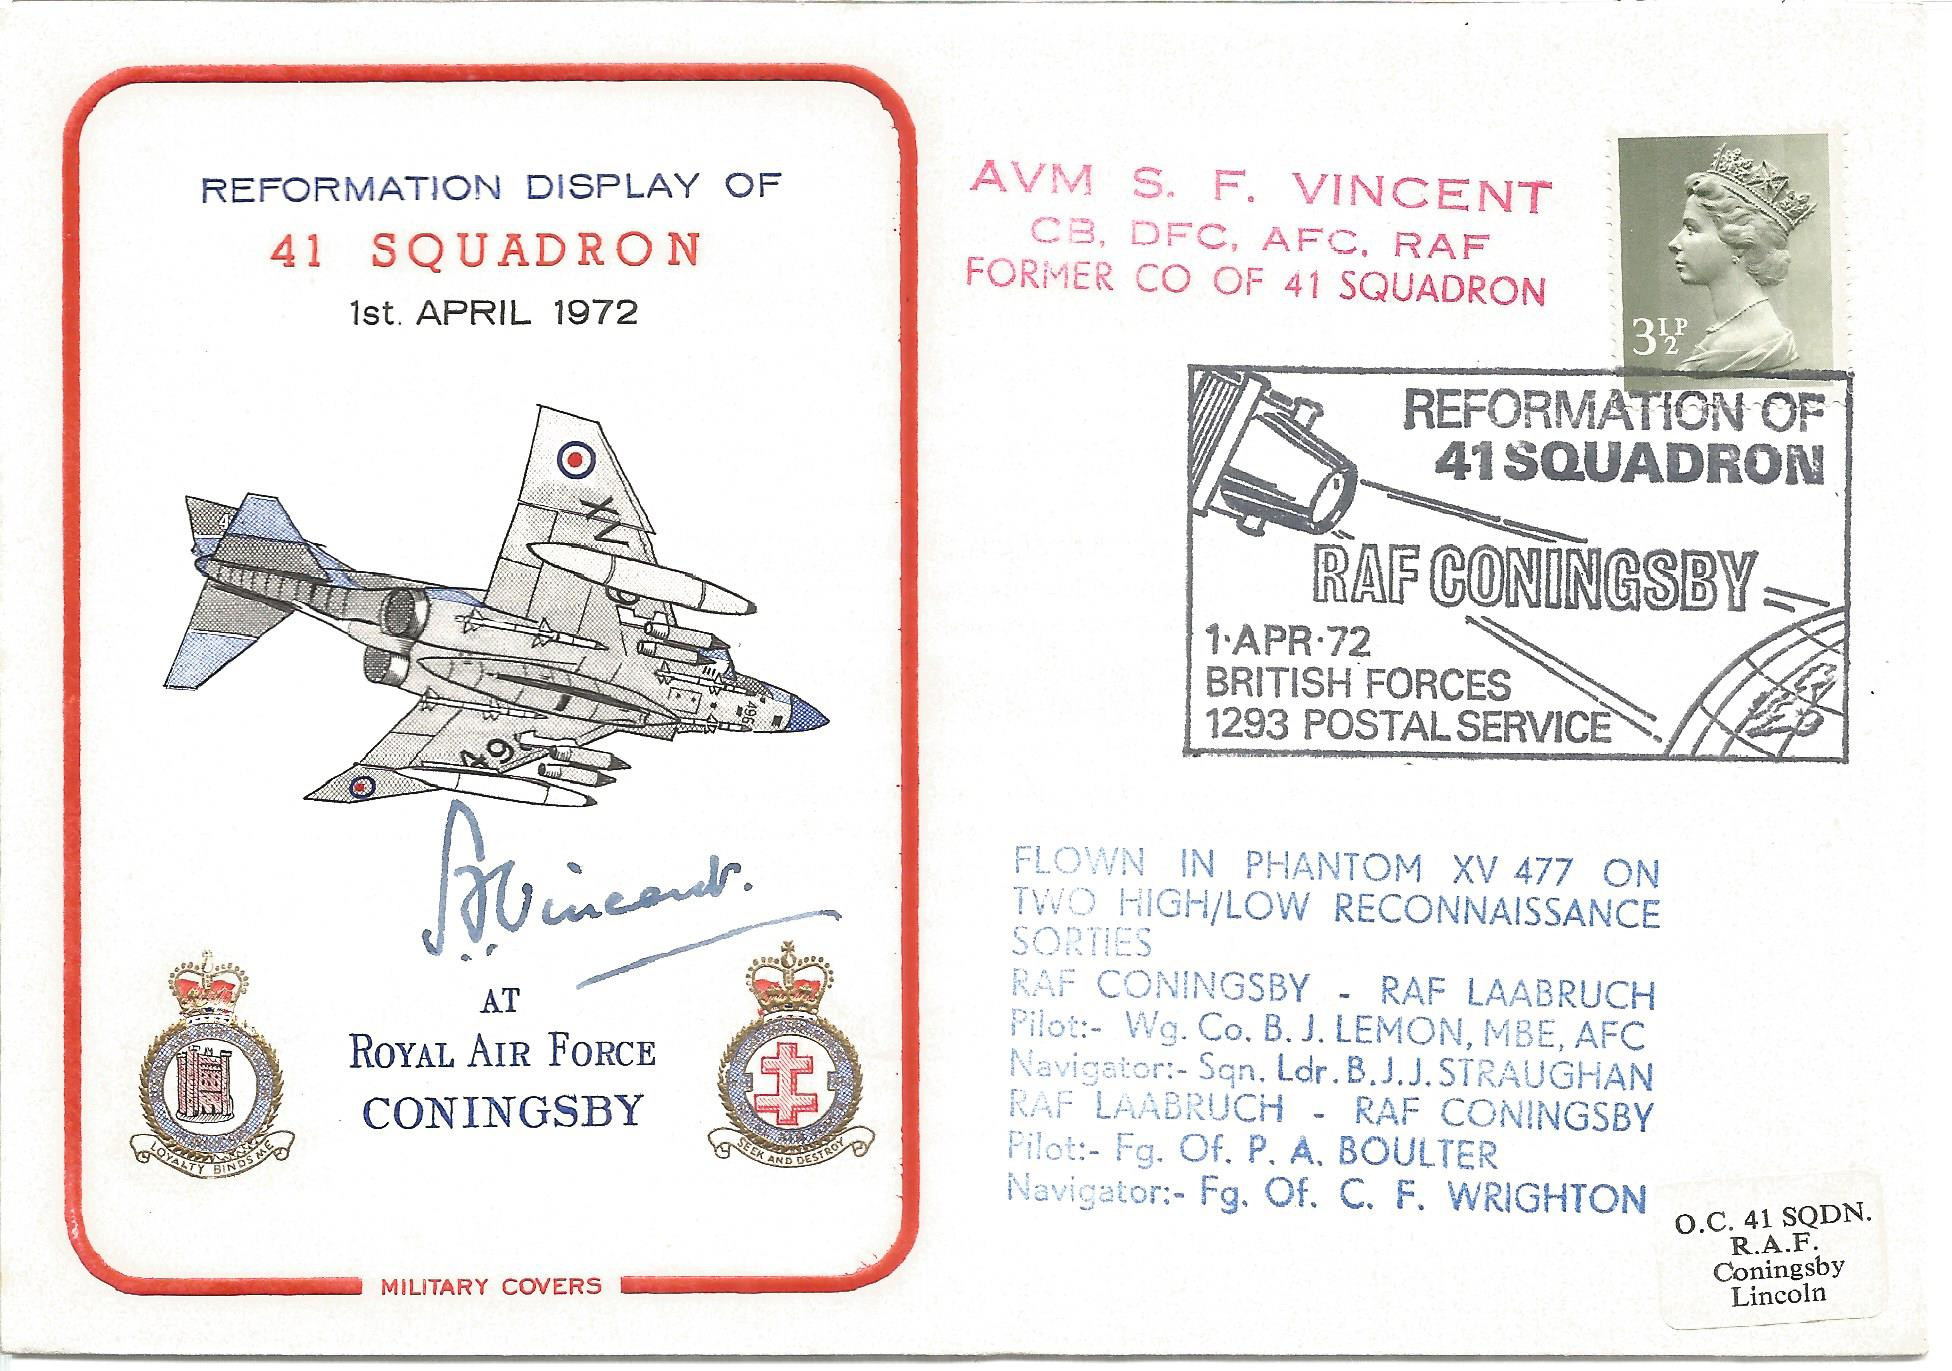 Only WW2, Great War ace AVM S. F. Vincent CB DFC AFC RAF signed Reformation Display of 41 Squadron